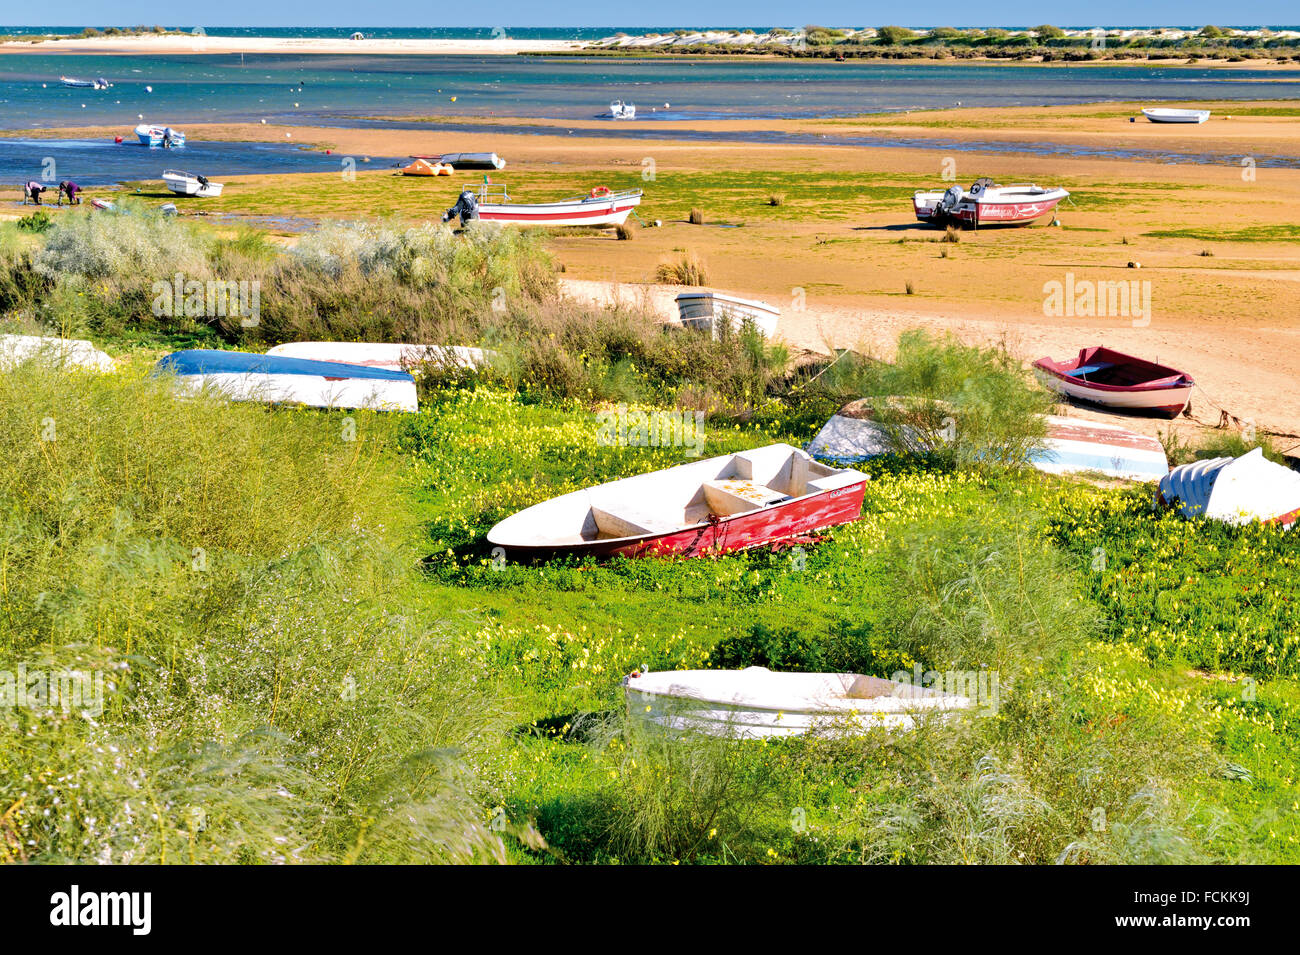 Portugal, Algarve:  Colorful fishing boats lying in the sandbanks of Ria Formosa at low tide - Stock Image